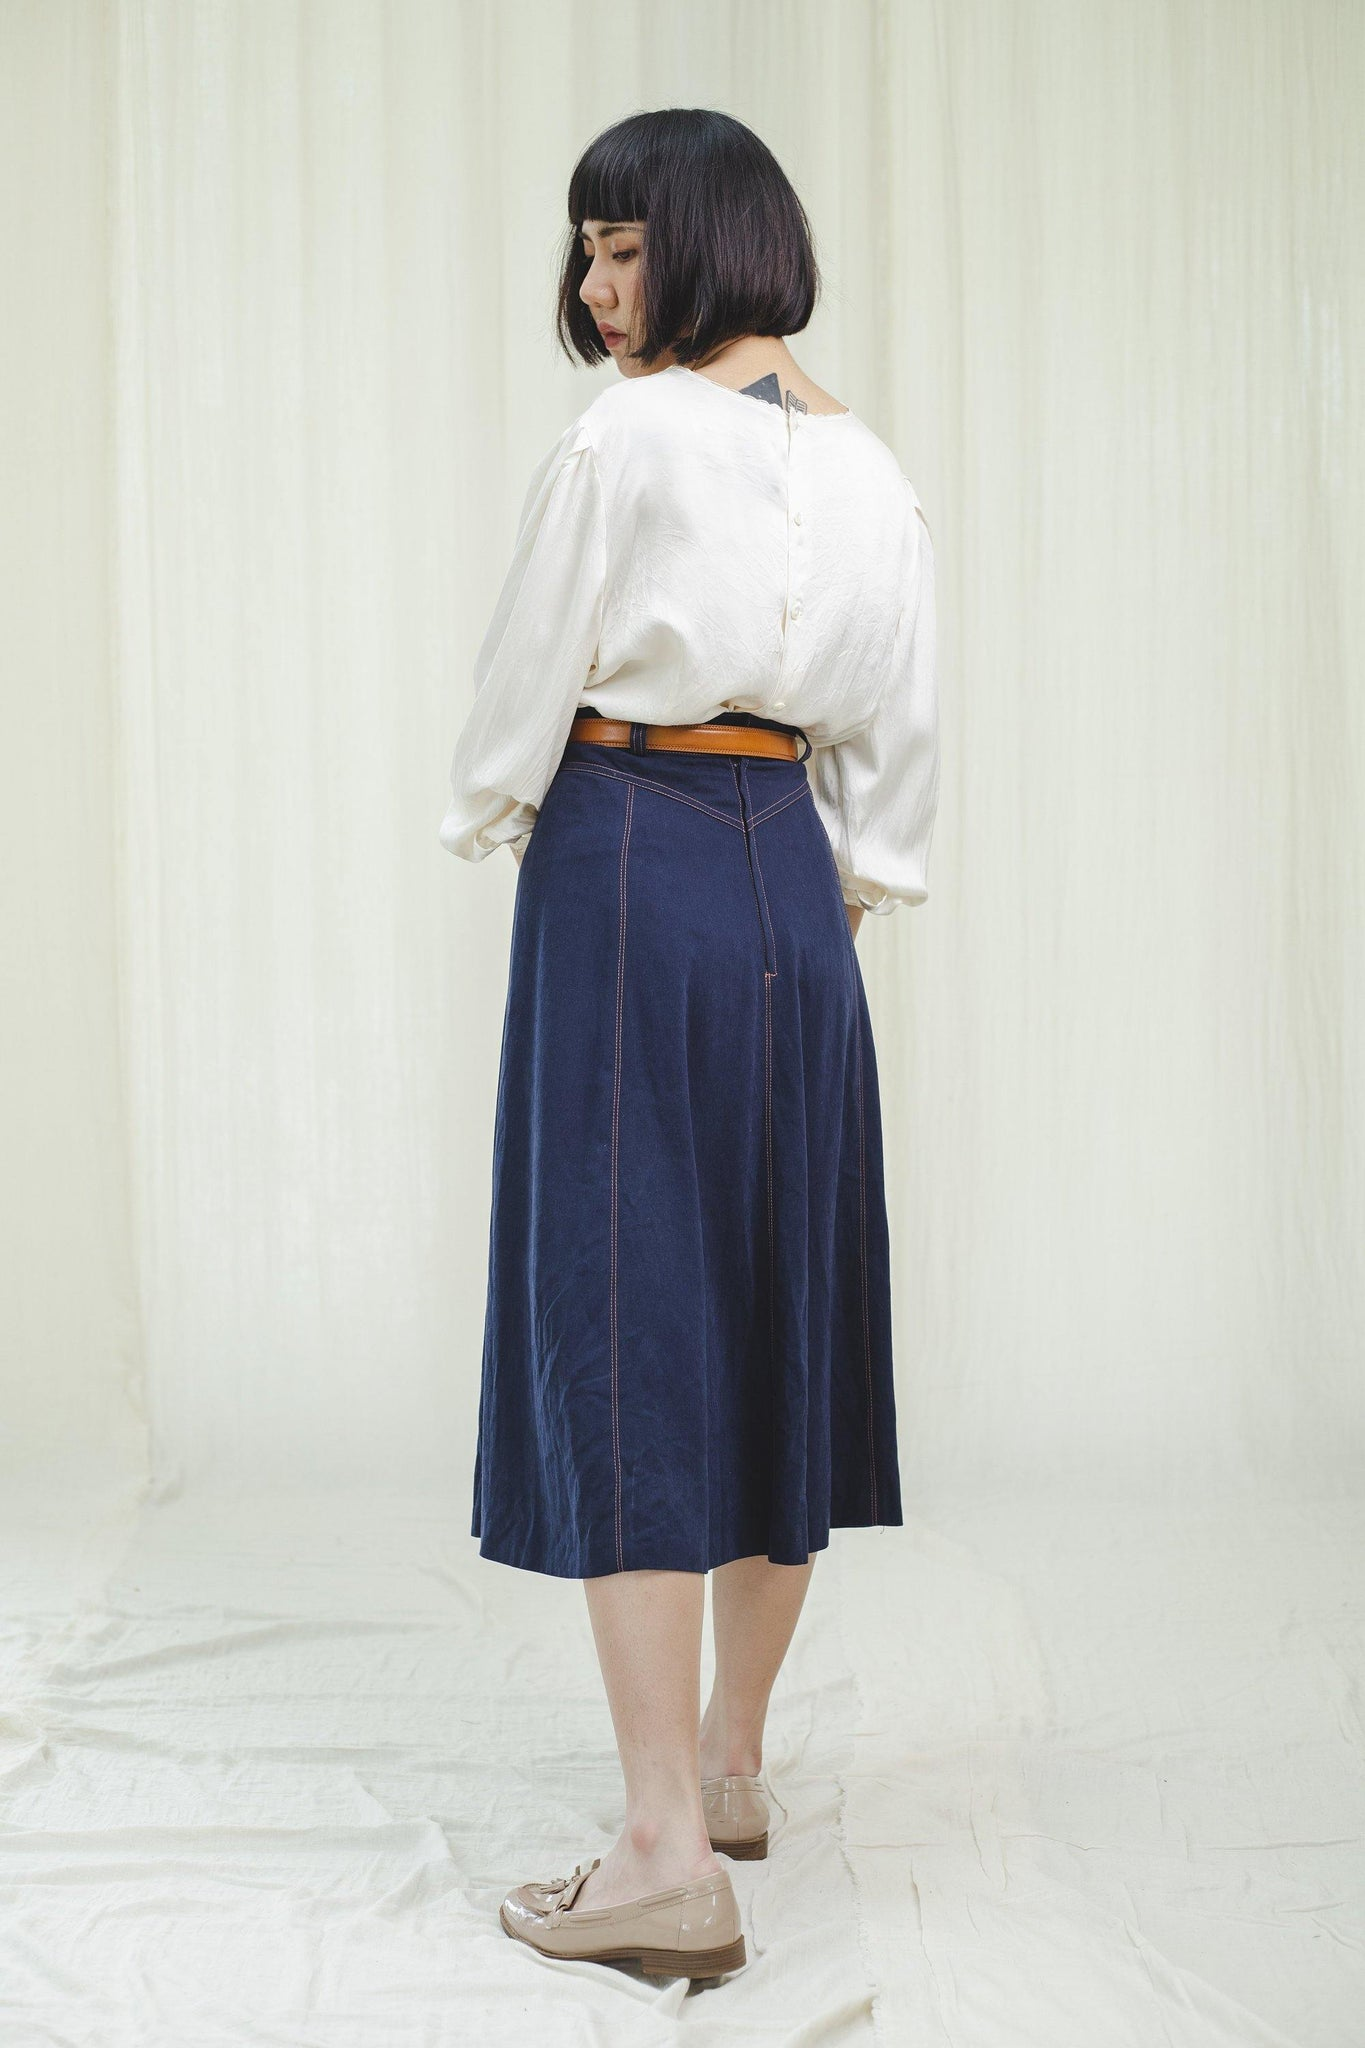 Dark blue denim 80's skirt